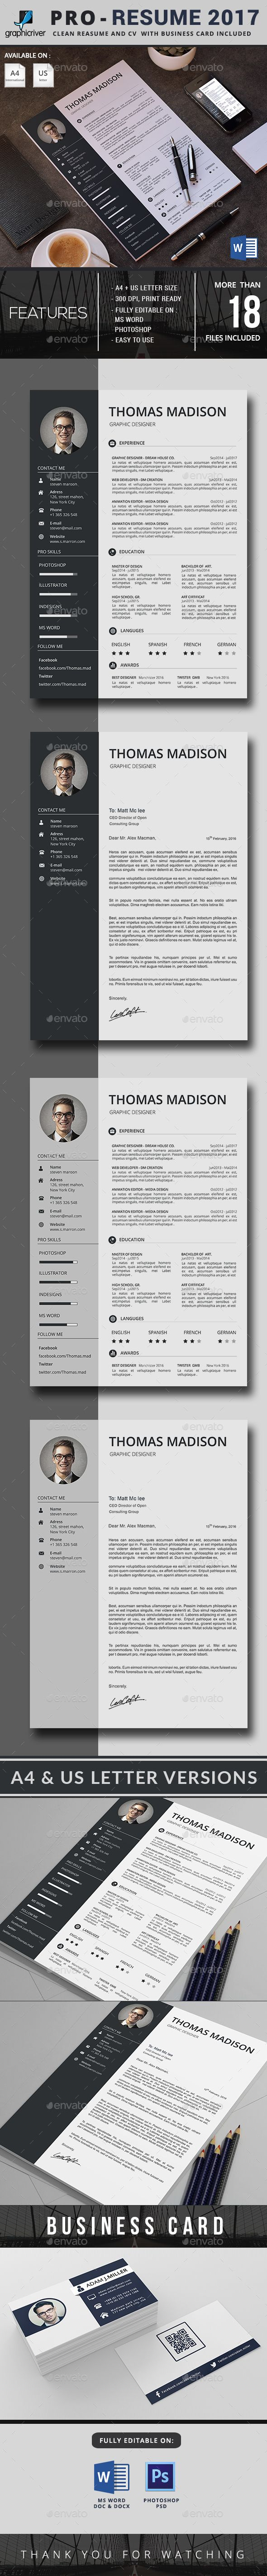 Fake Resume Generator Pdf  Best Images About Resume On Pinterest  Template Creative  Skills Resume Example Pdf with Resume Tenplate Word Resume Experienced Resume